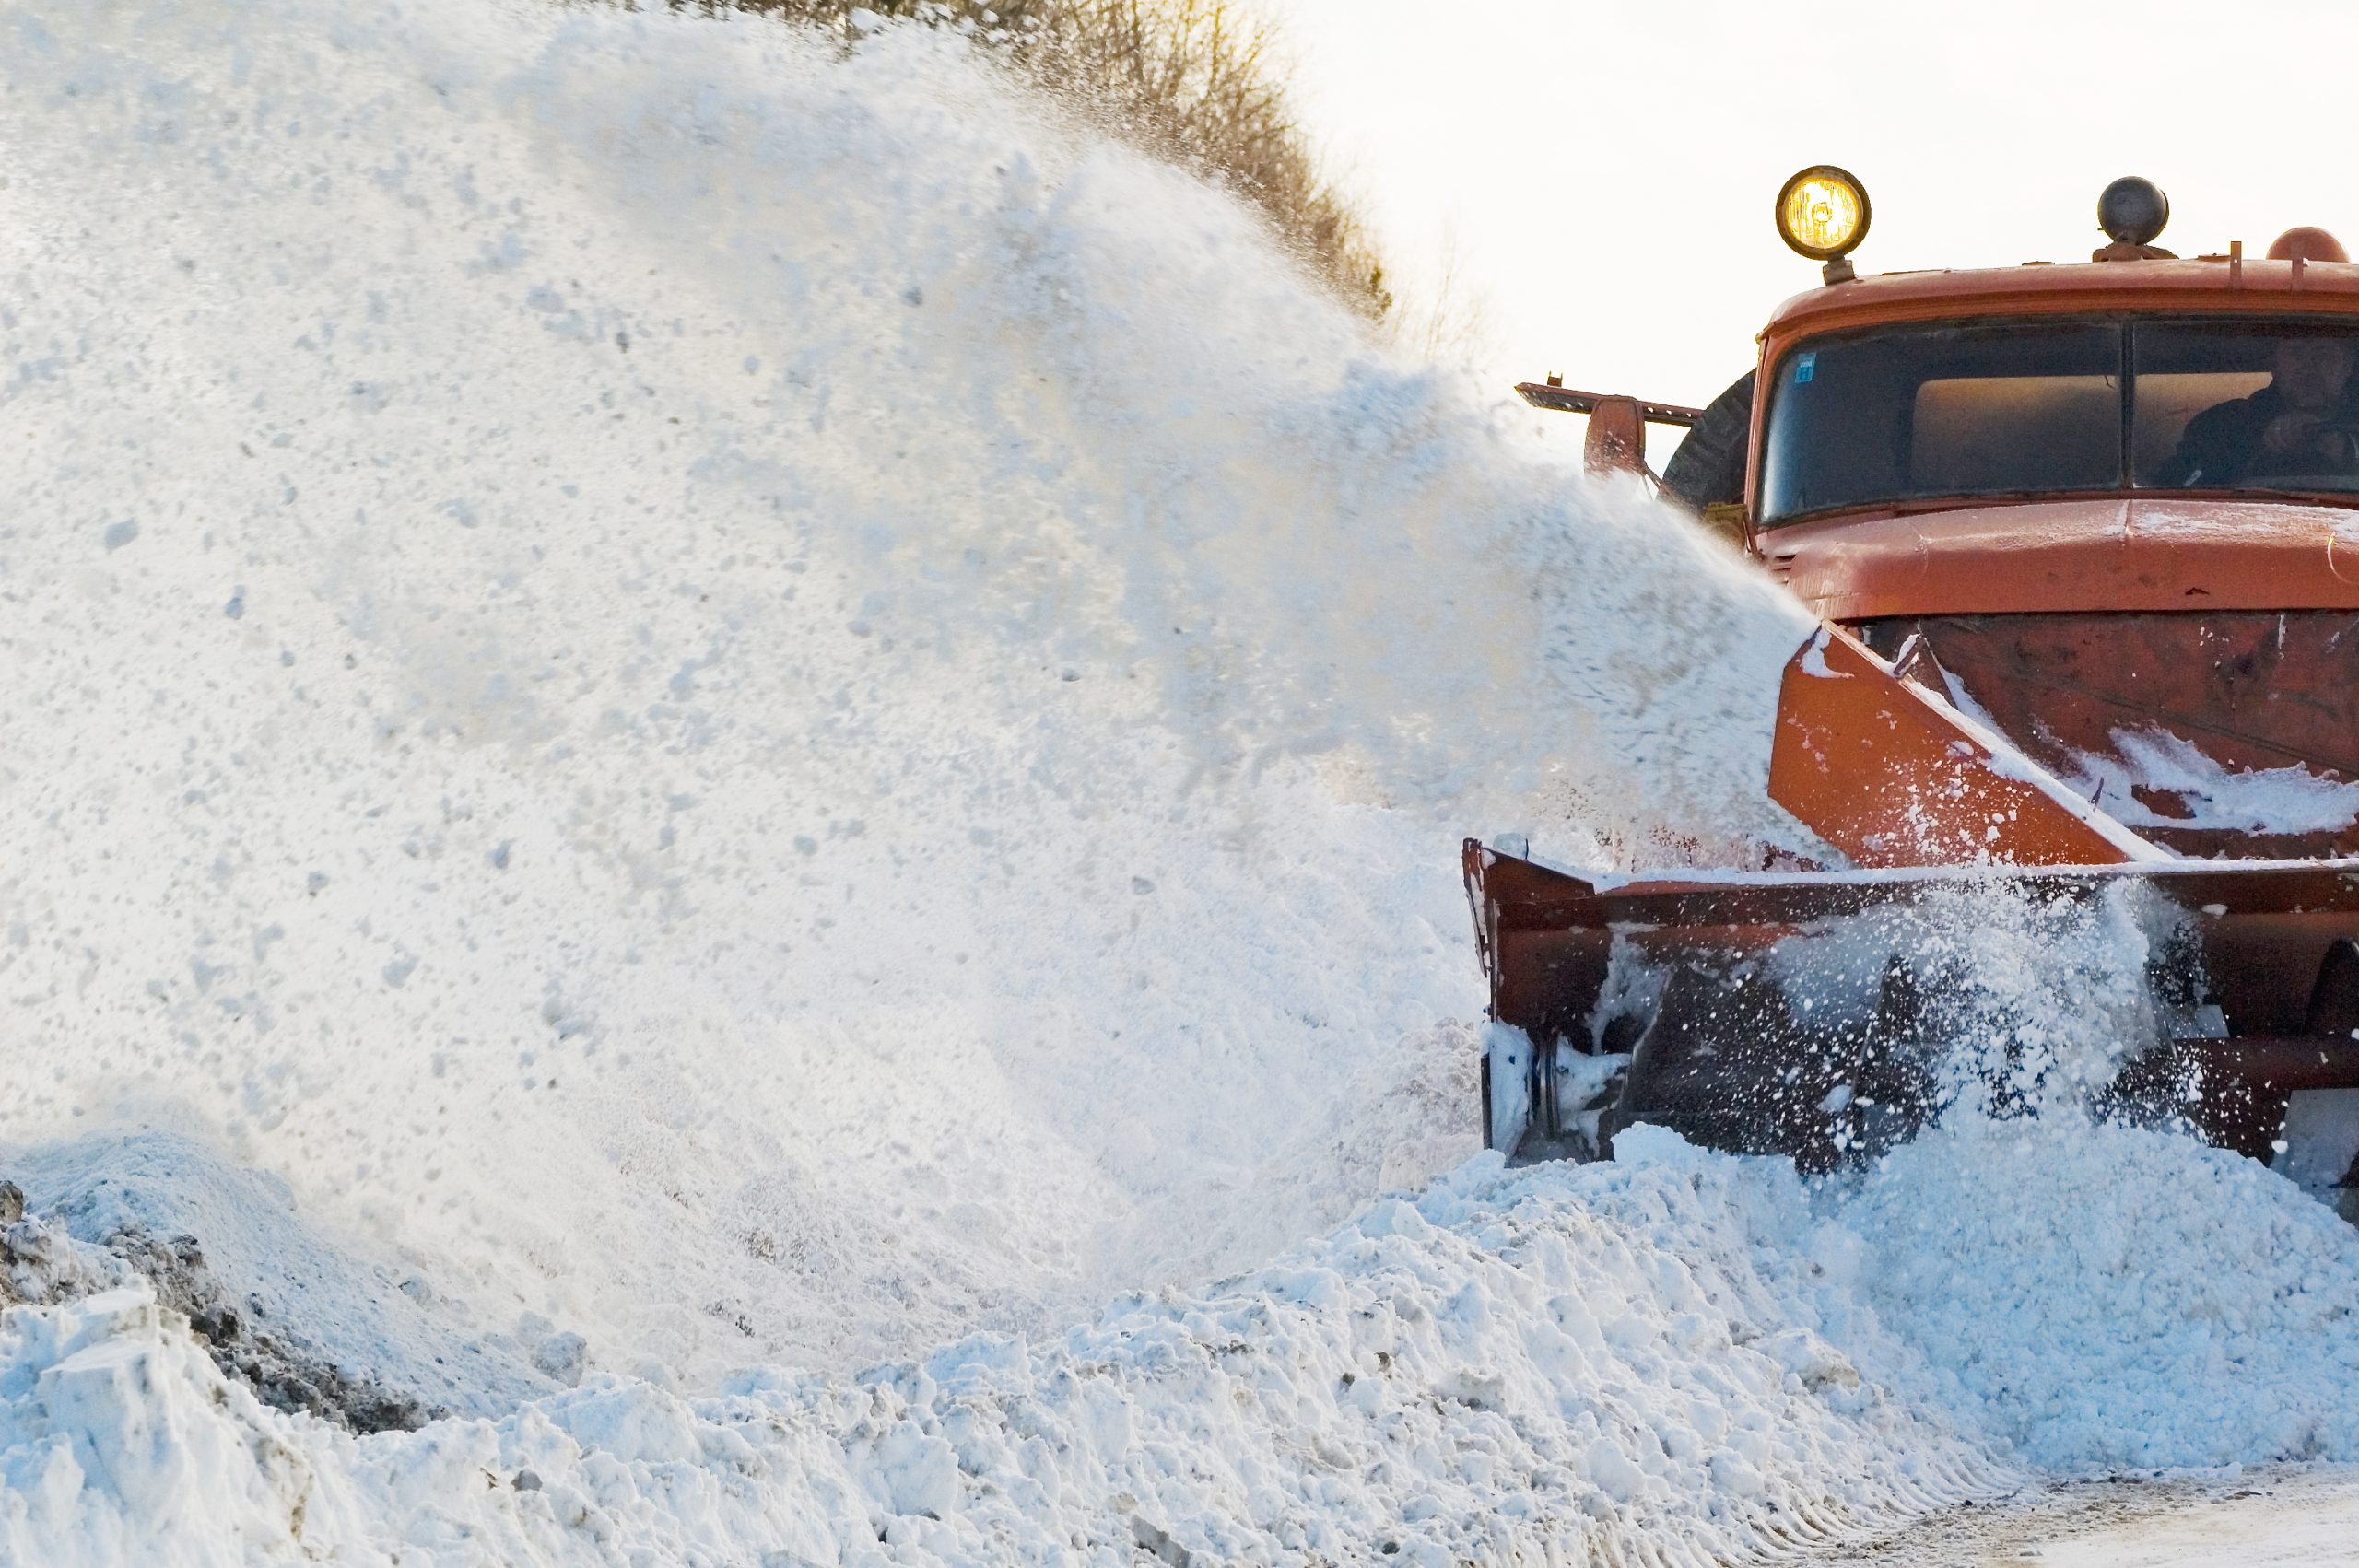 How To Market Snow Plow Services